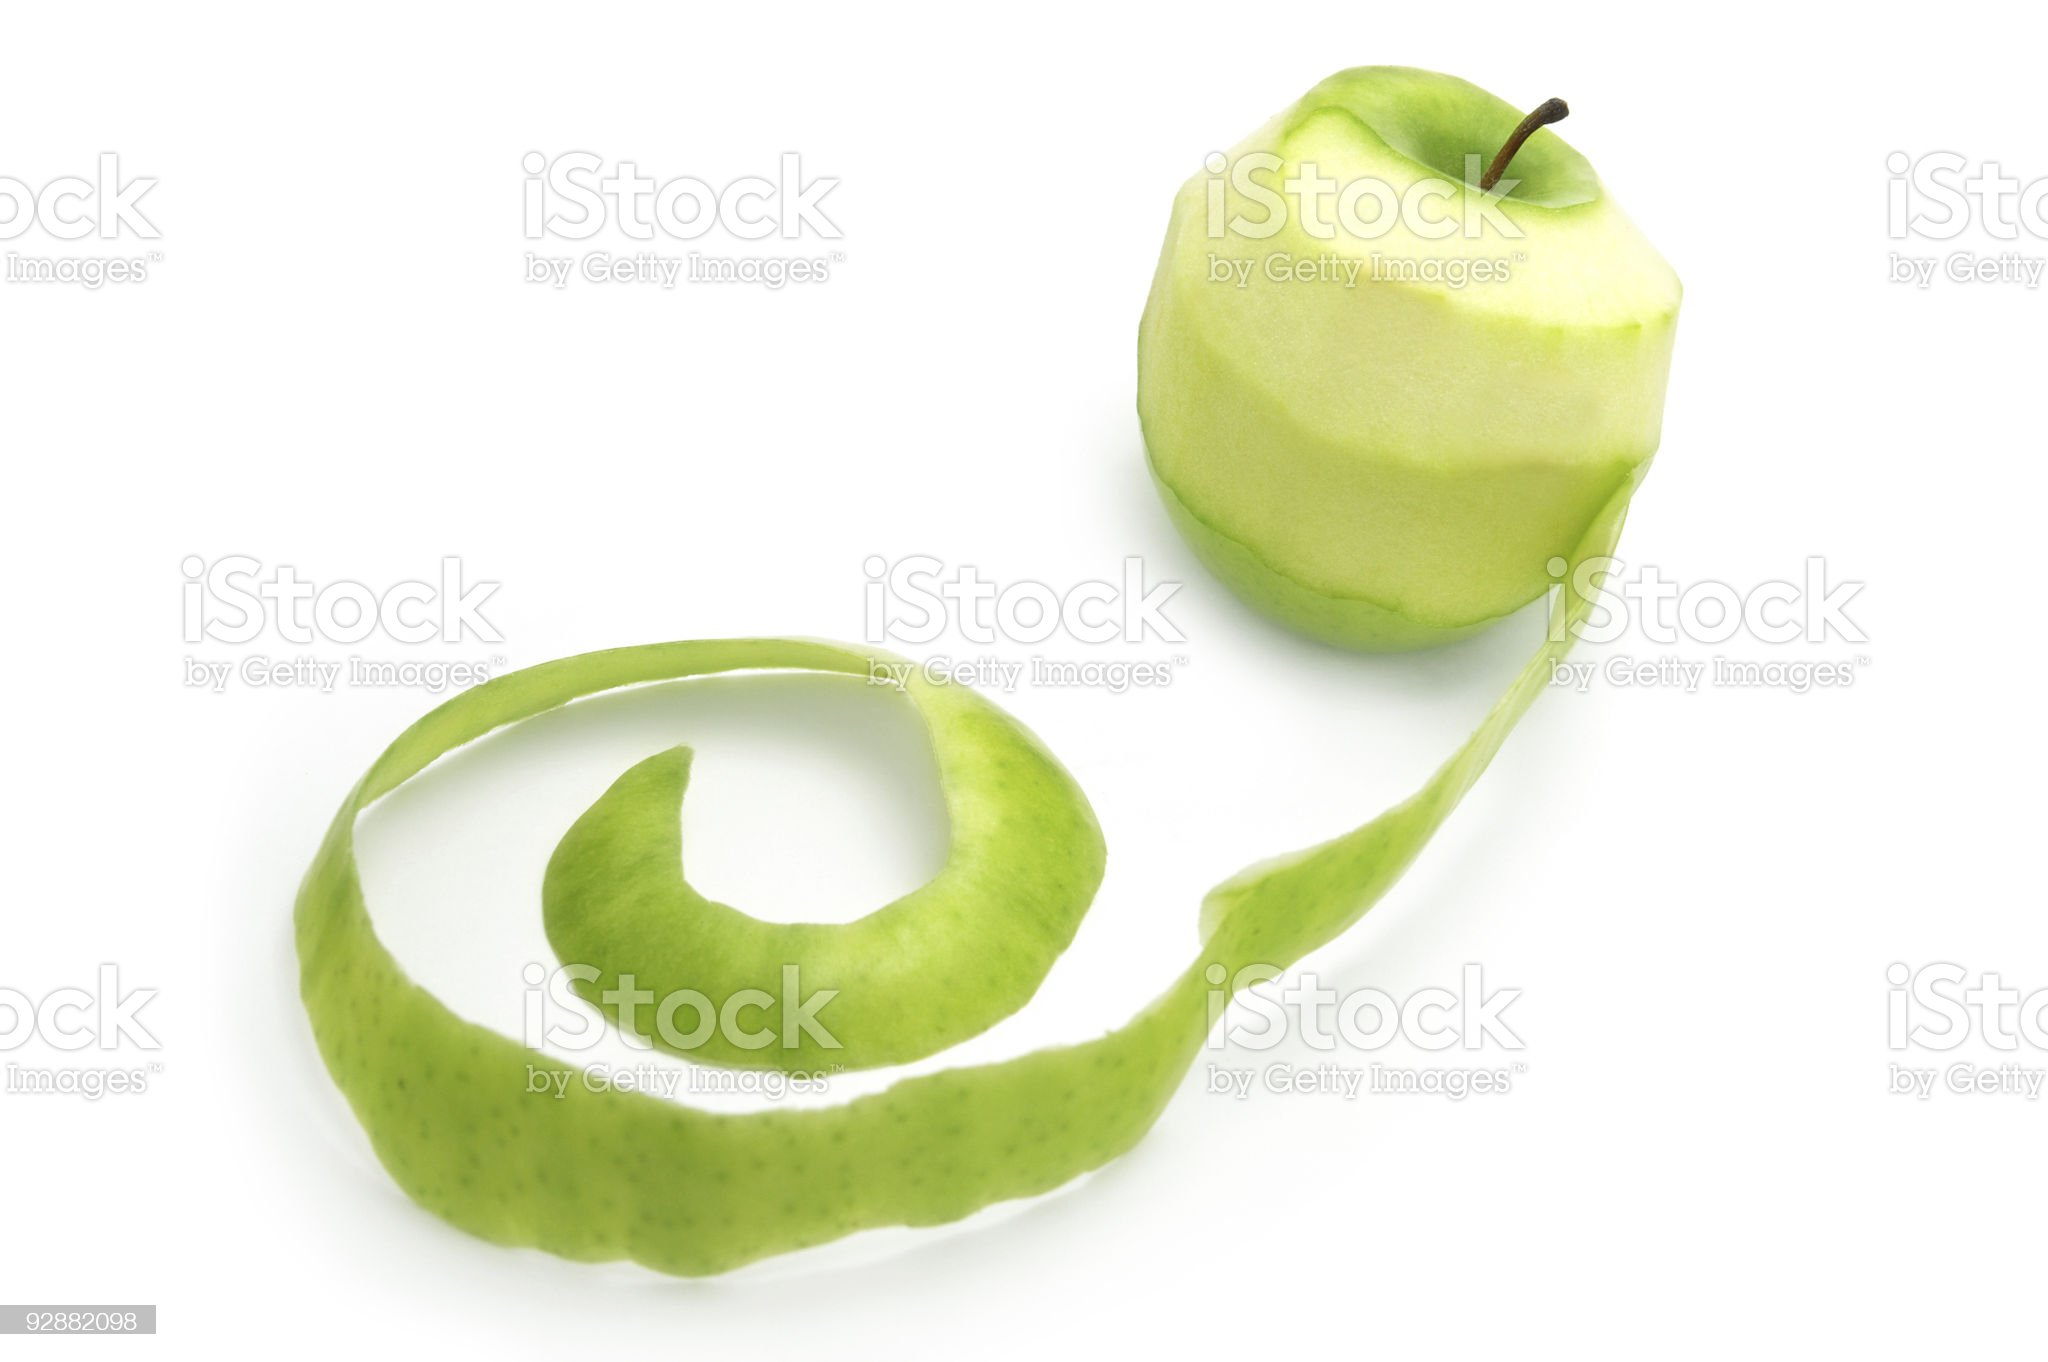 Apple with peelings royalty-free stock photo